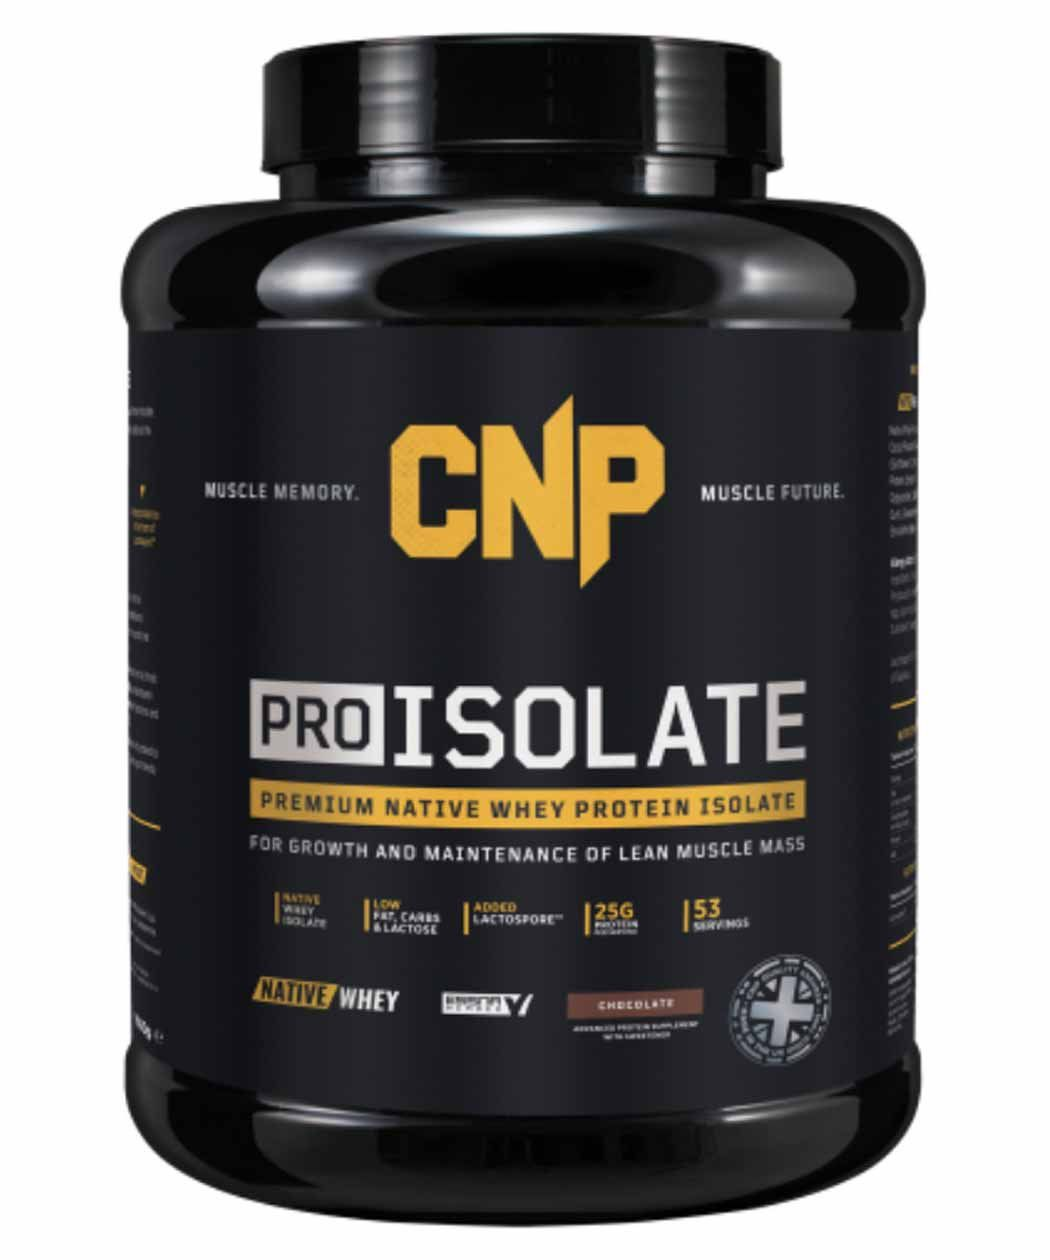 CNP Pro Isolate